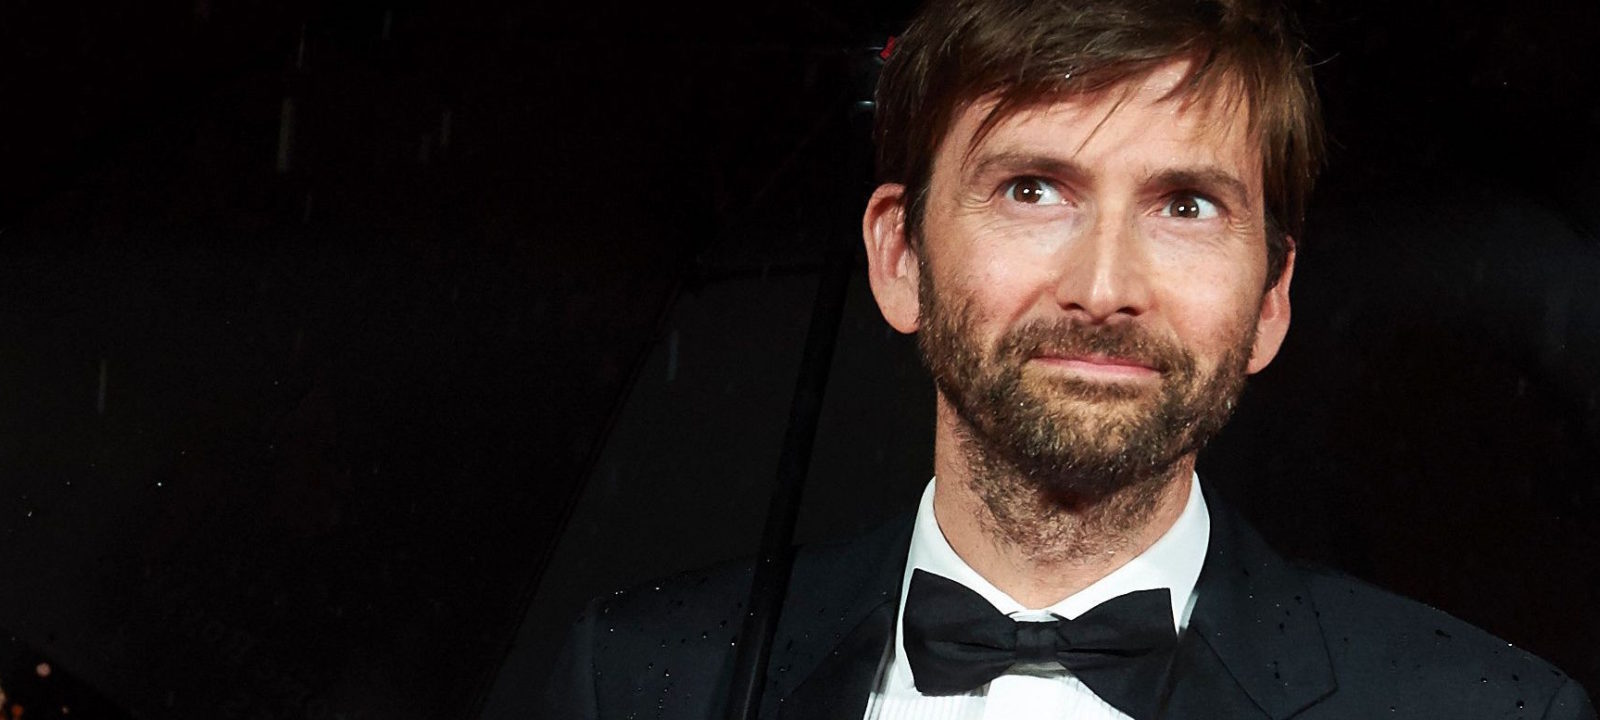 British actor David Tennant poses for photographers on the red carpet as he arrives for the BFI London Film Festival Awards in central London on October 15, 2016.